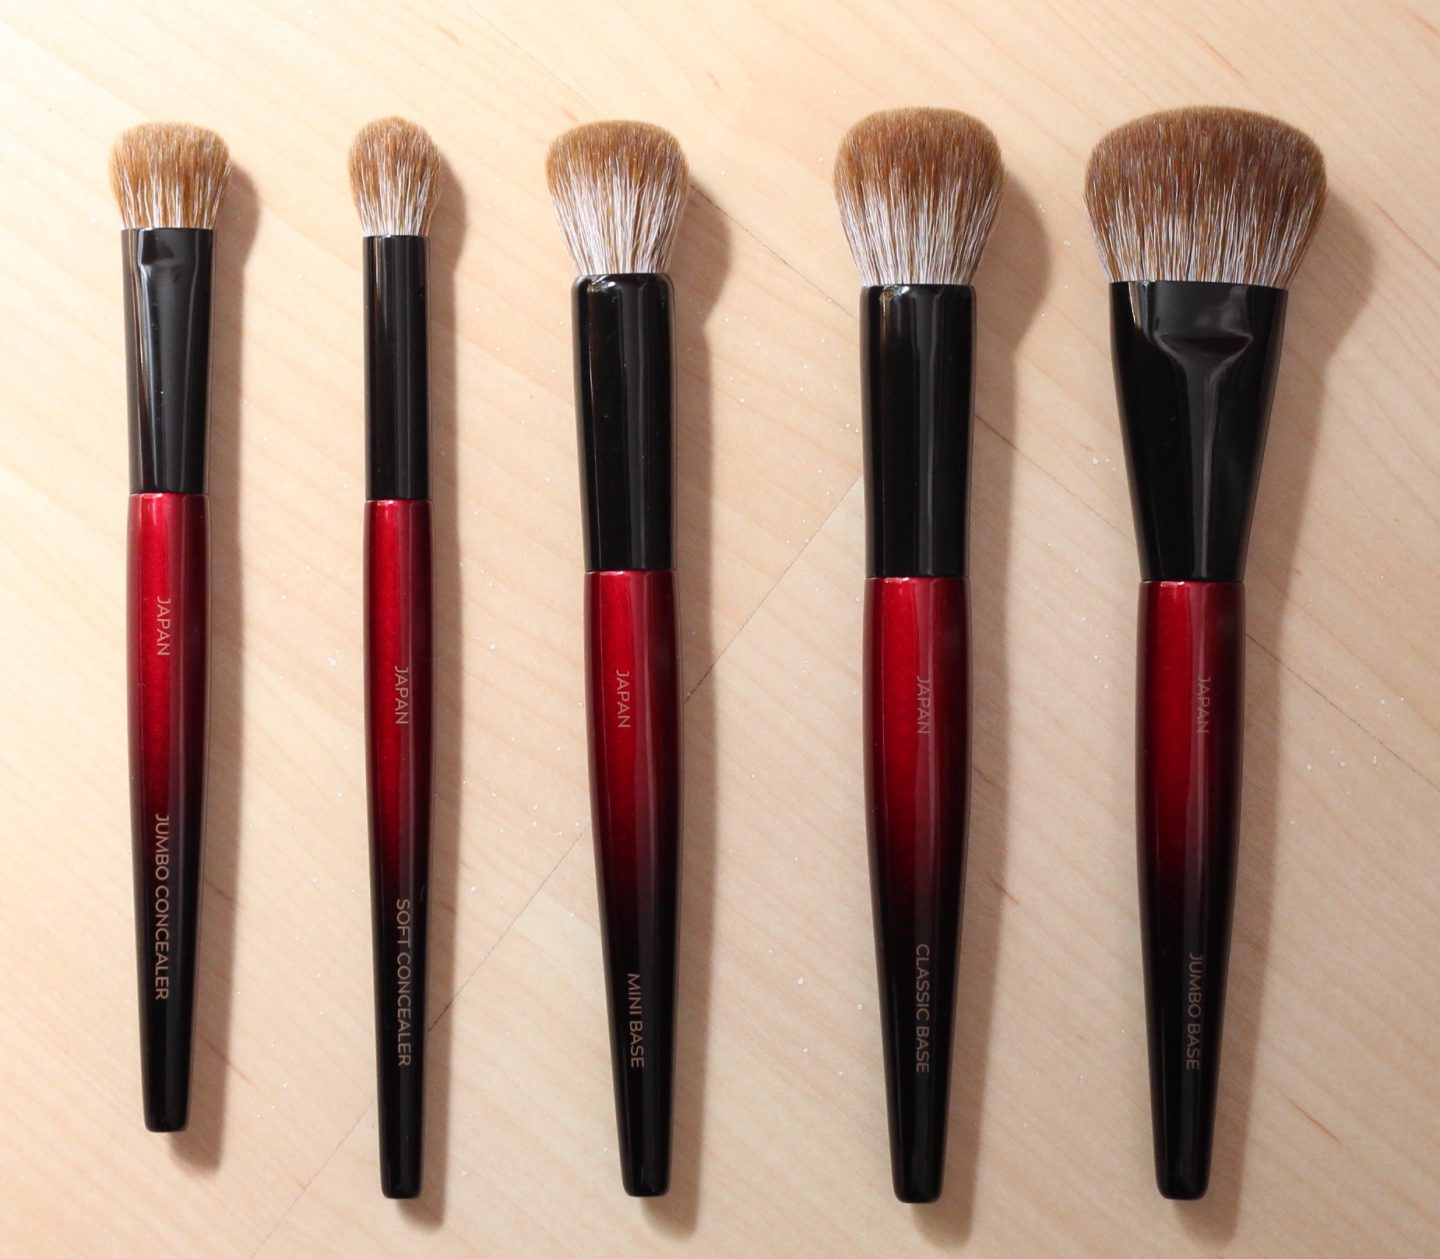 Sonia G Fusion Series Brushes